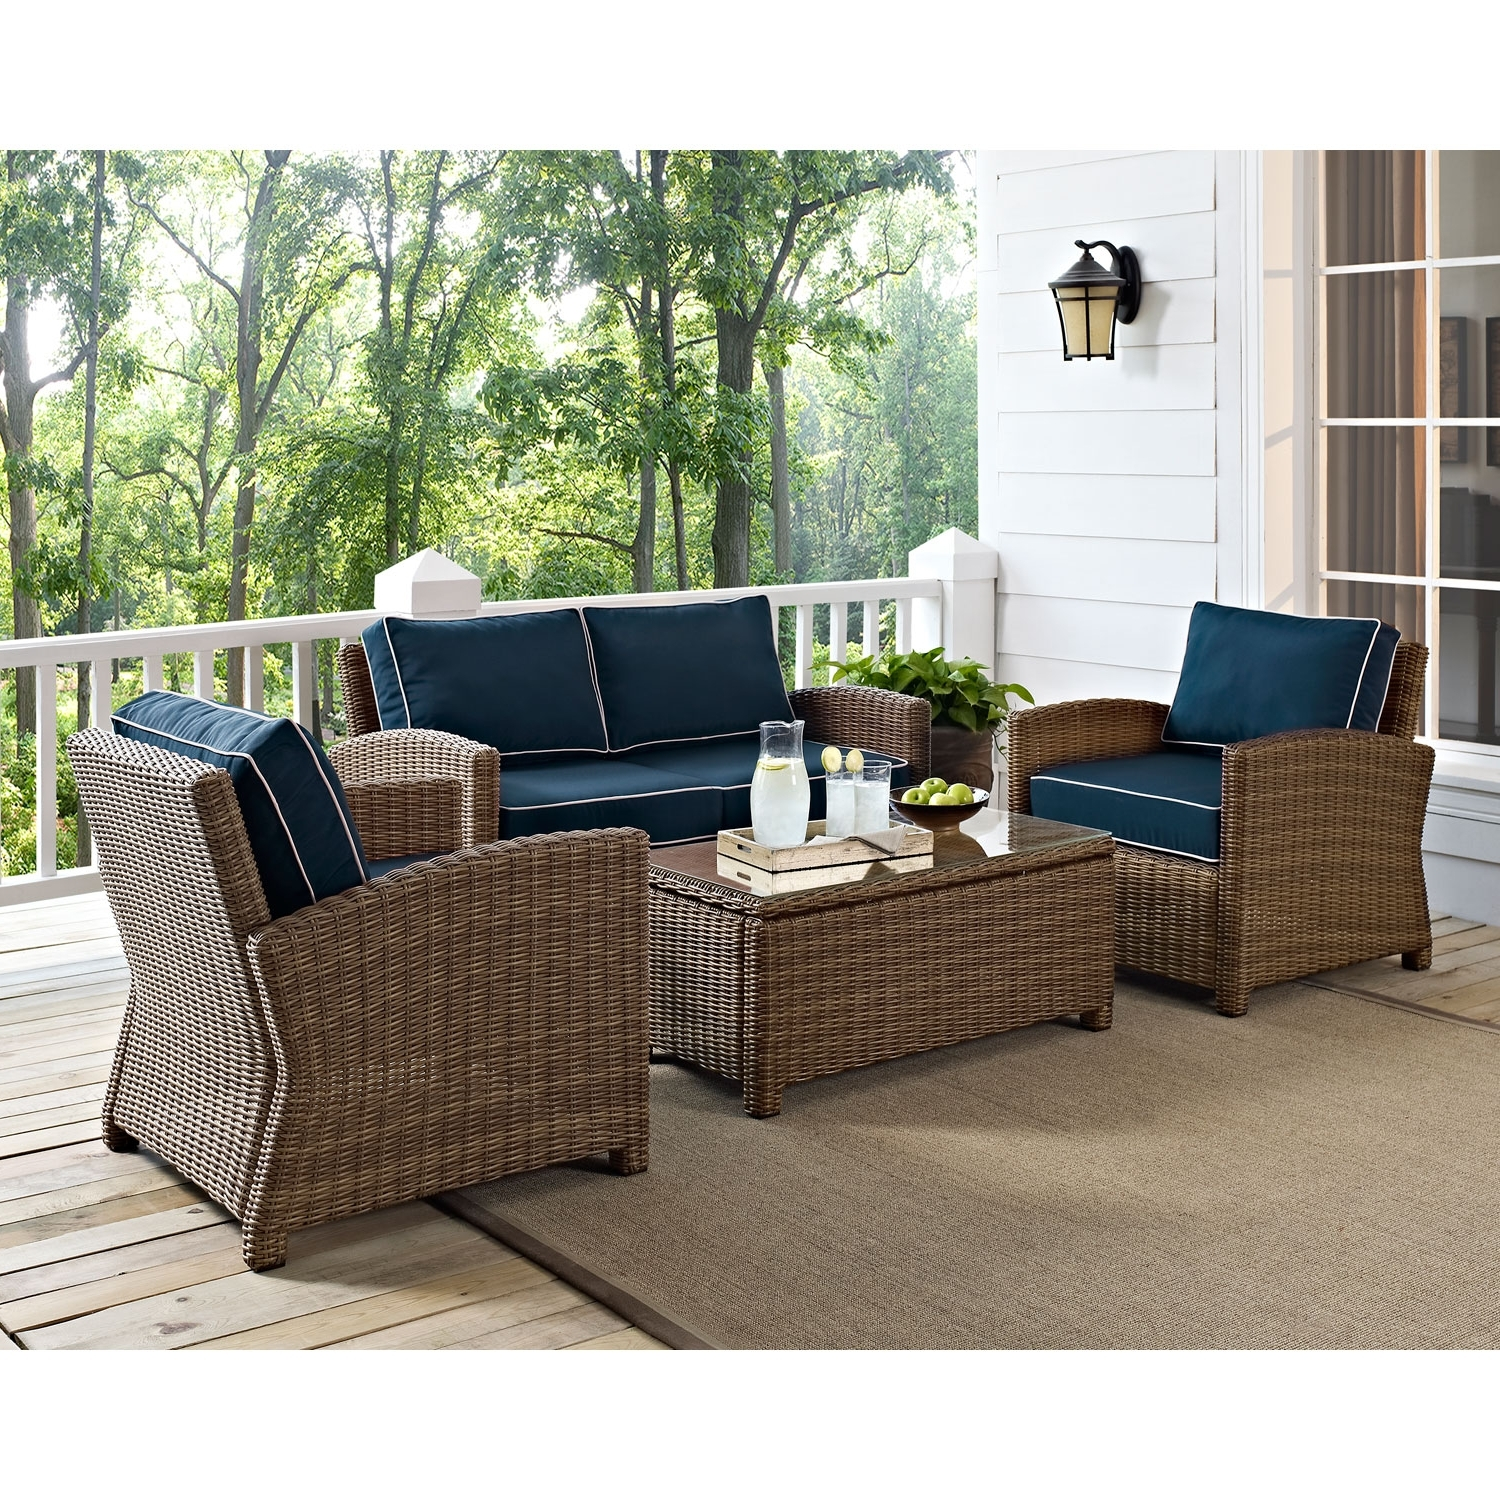 Widely Used Crosley Furniture Bradenton 4 Piece Outdoor Wicker Seating Set With Within Patio Sectional Conversation Sets (View 16 of 20)